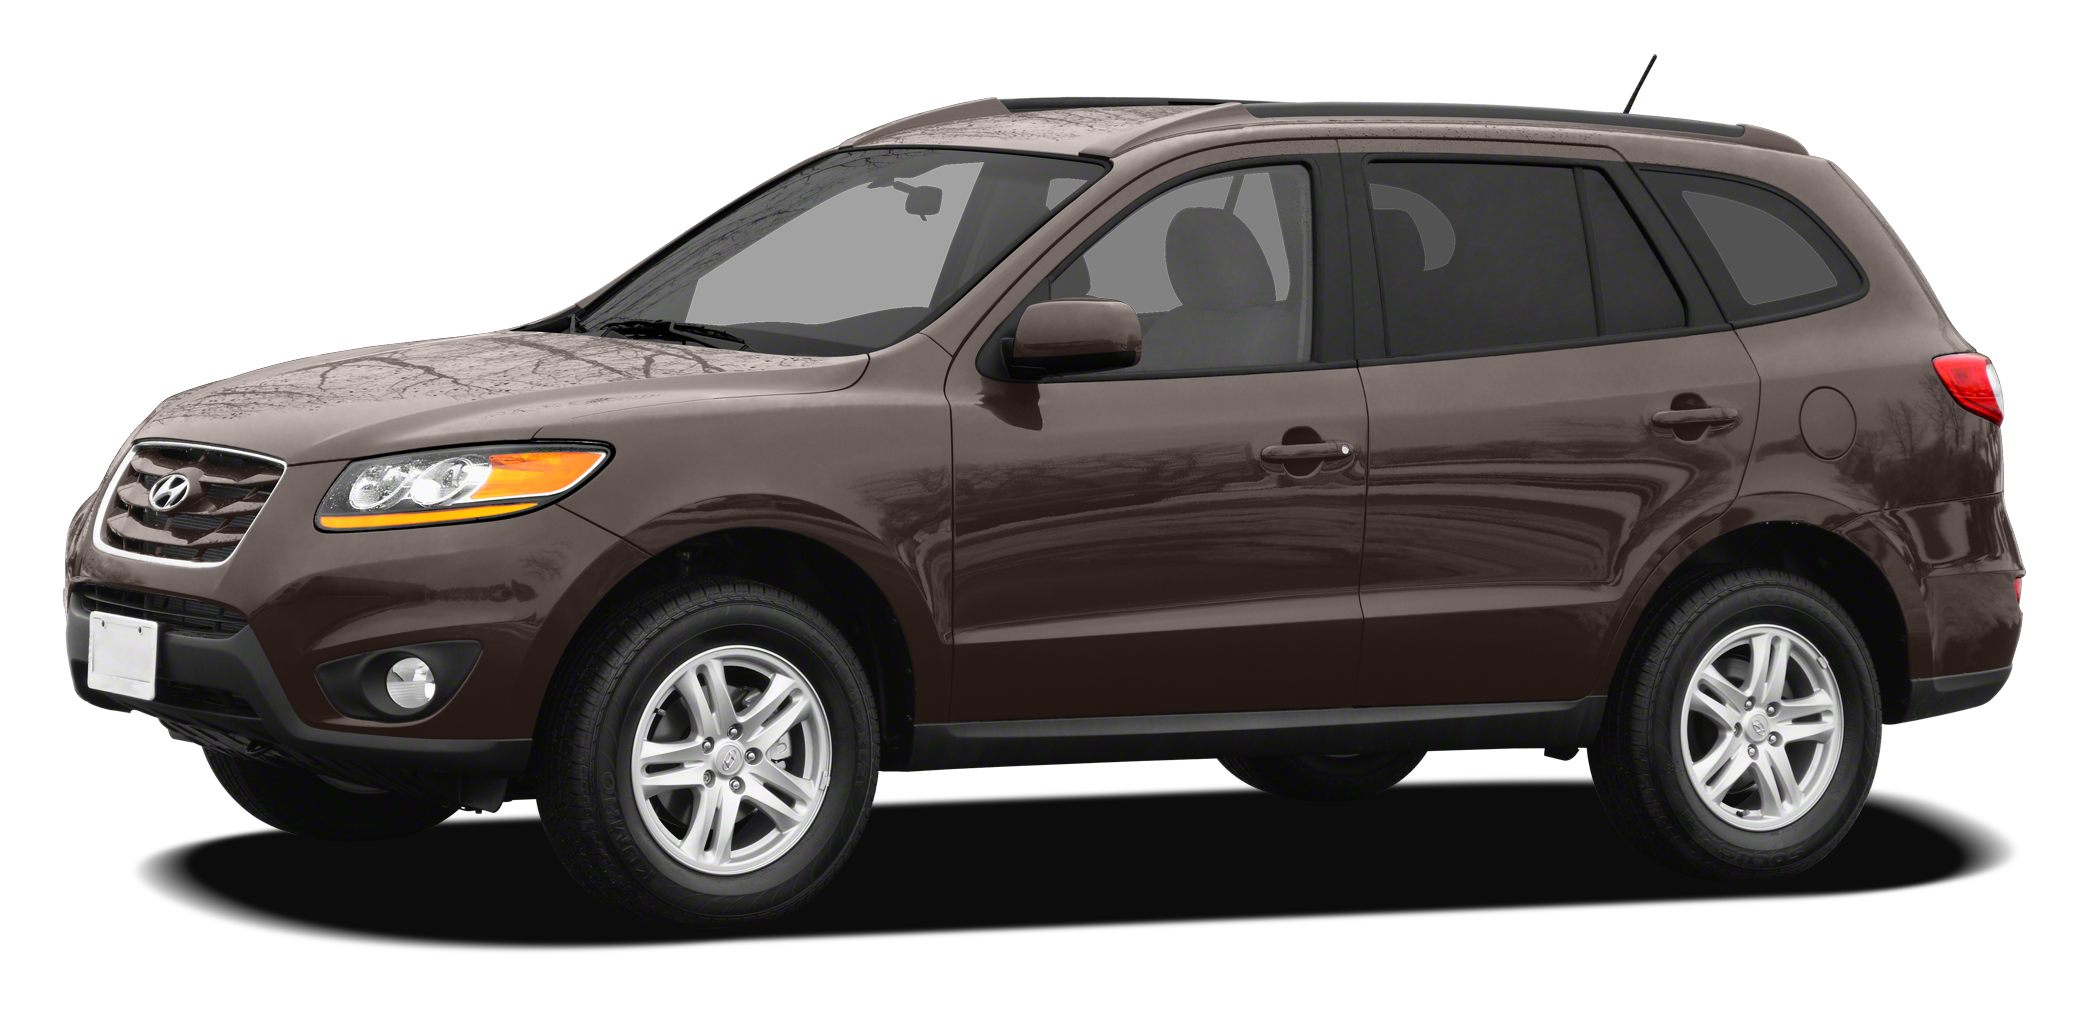 2011 Hyundai Santa Fe SE Hyundai Certified just fully serviced by us Take a look This one owner San